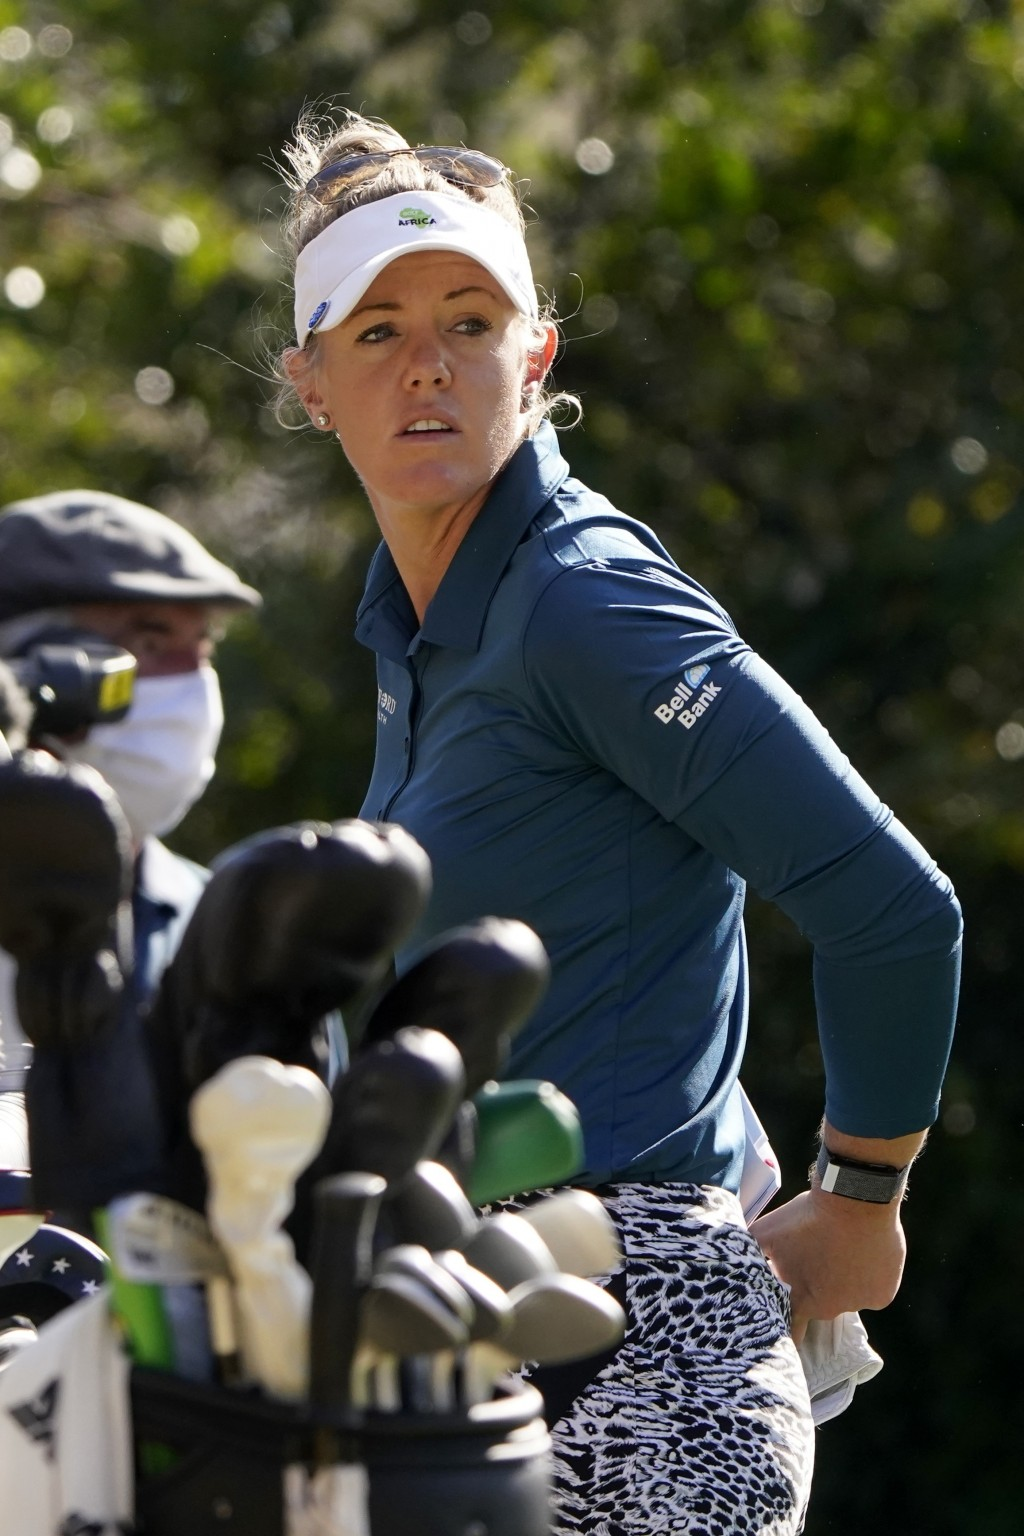 Amy Olson prepares to hit off the third tee during the first round of the U.S. Women's Open golf tournament in Houston, Thursday, Dec. 10, 2020. (AP P...